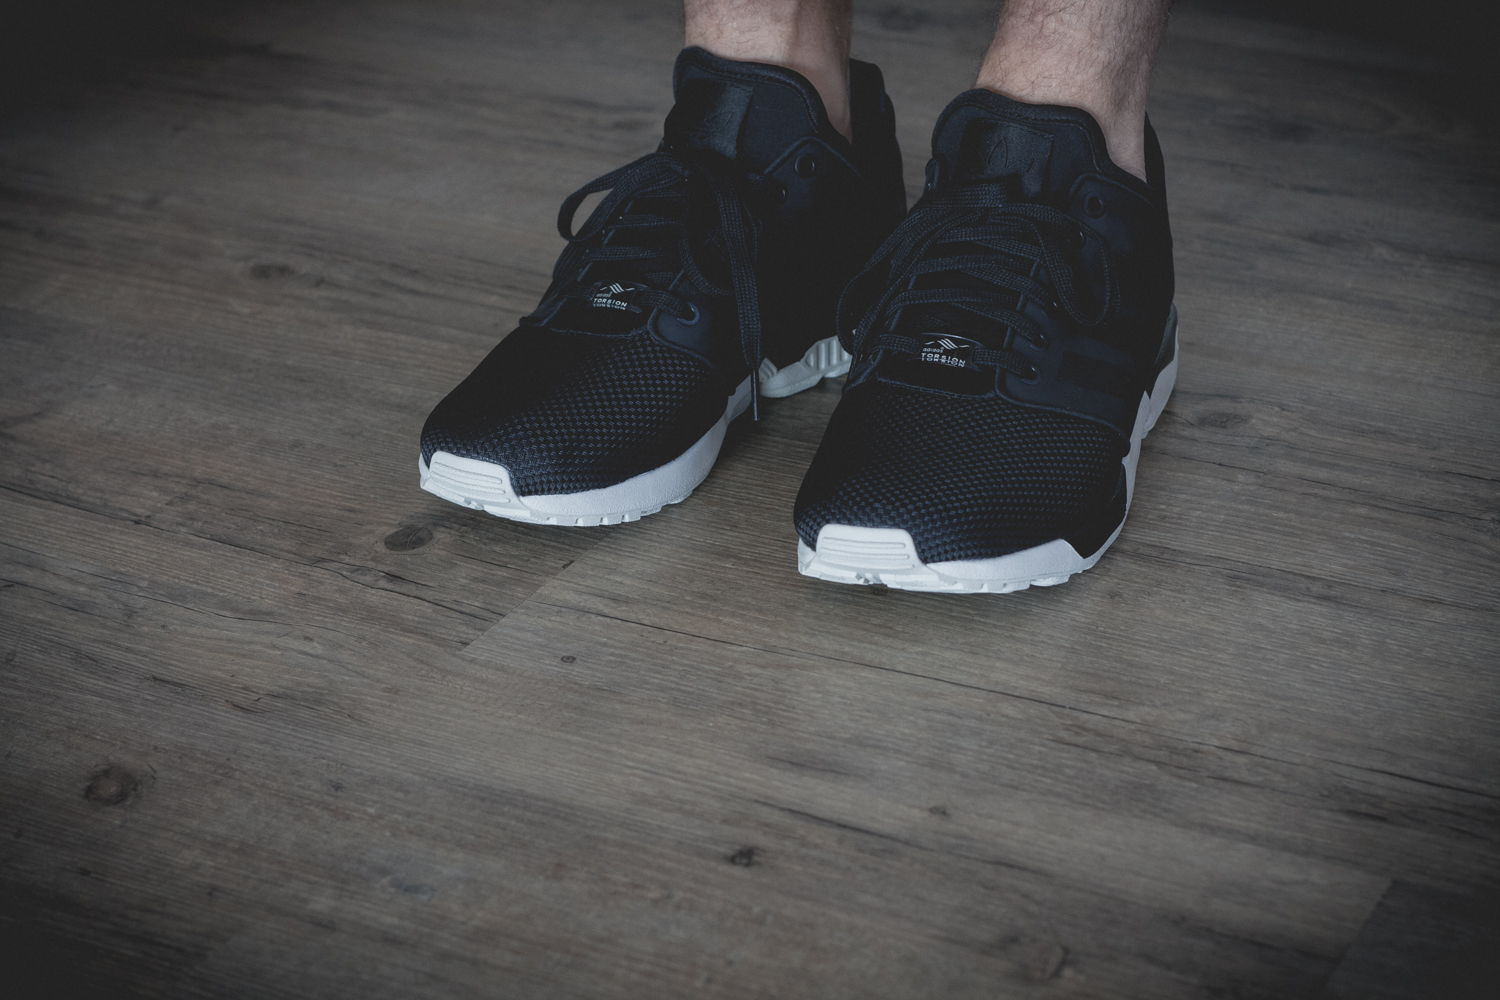 huge selection of 2d355 79e4b best price adidas zx flux nps review a1fe0 6b116